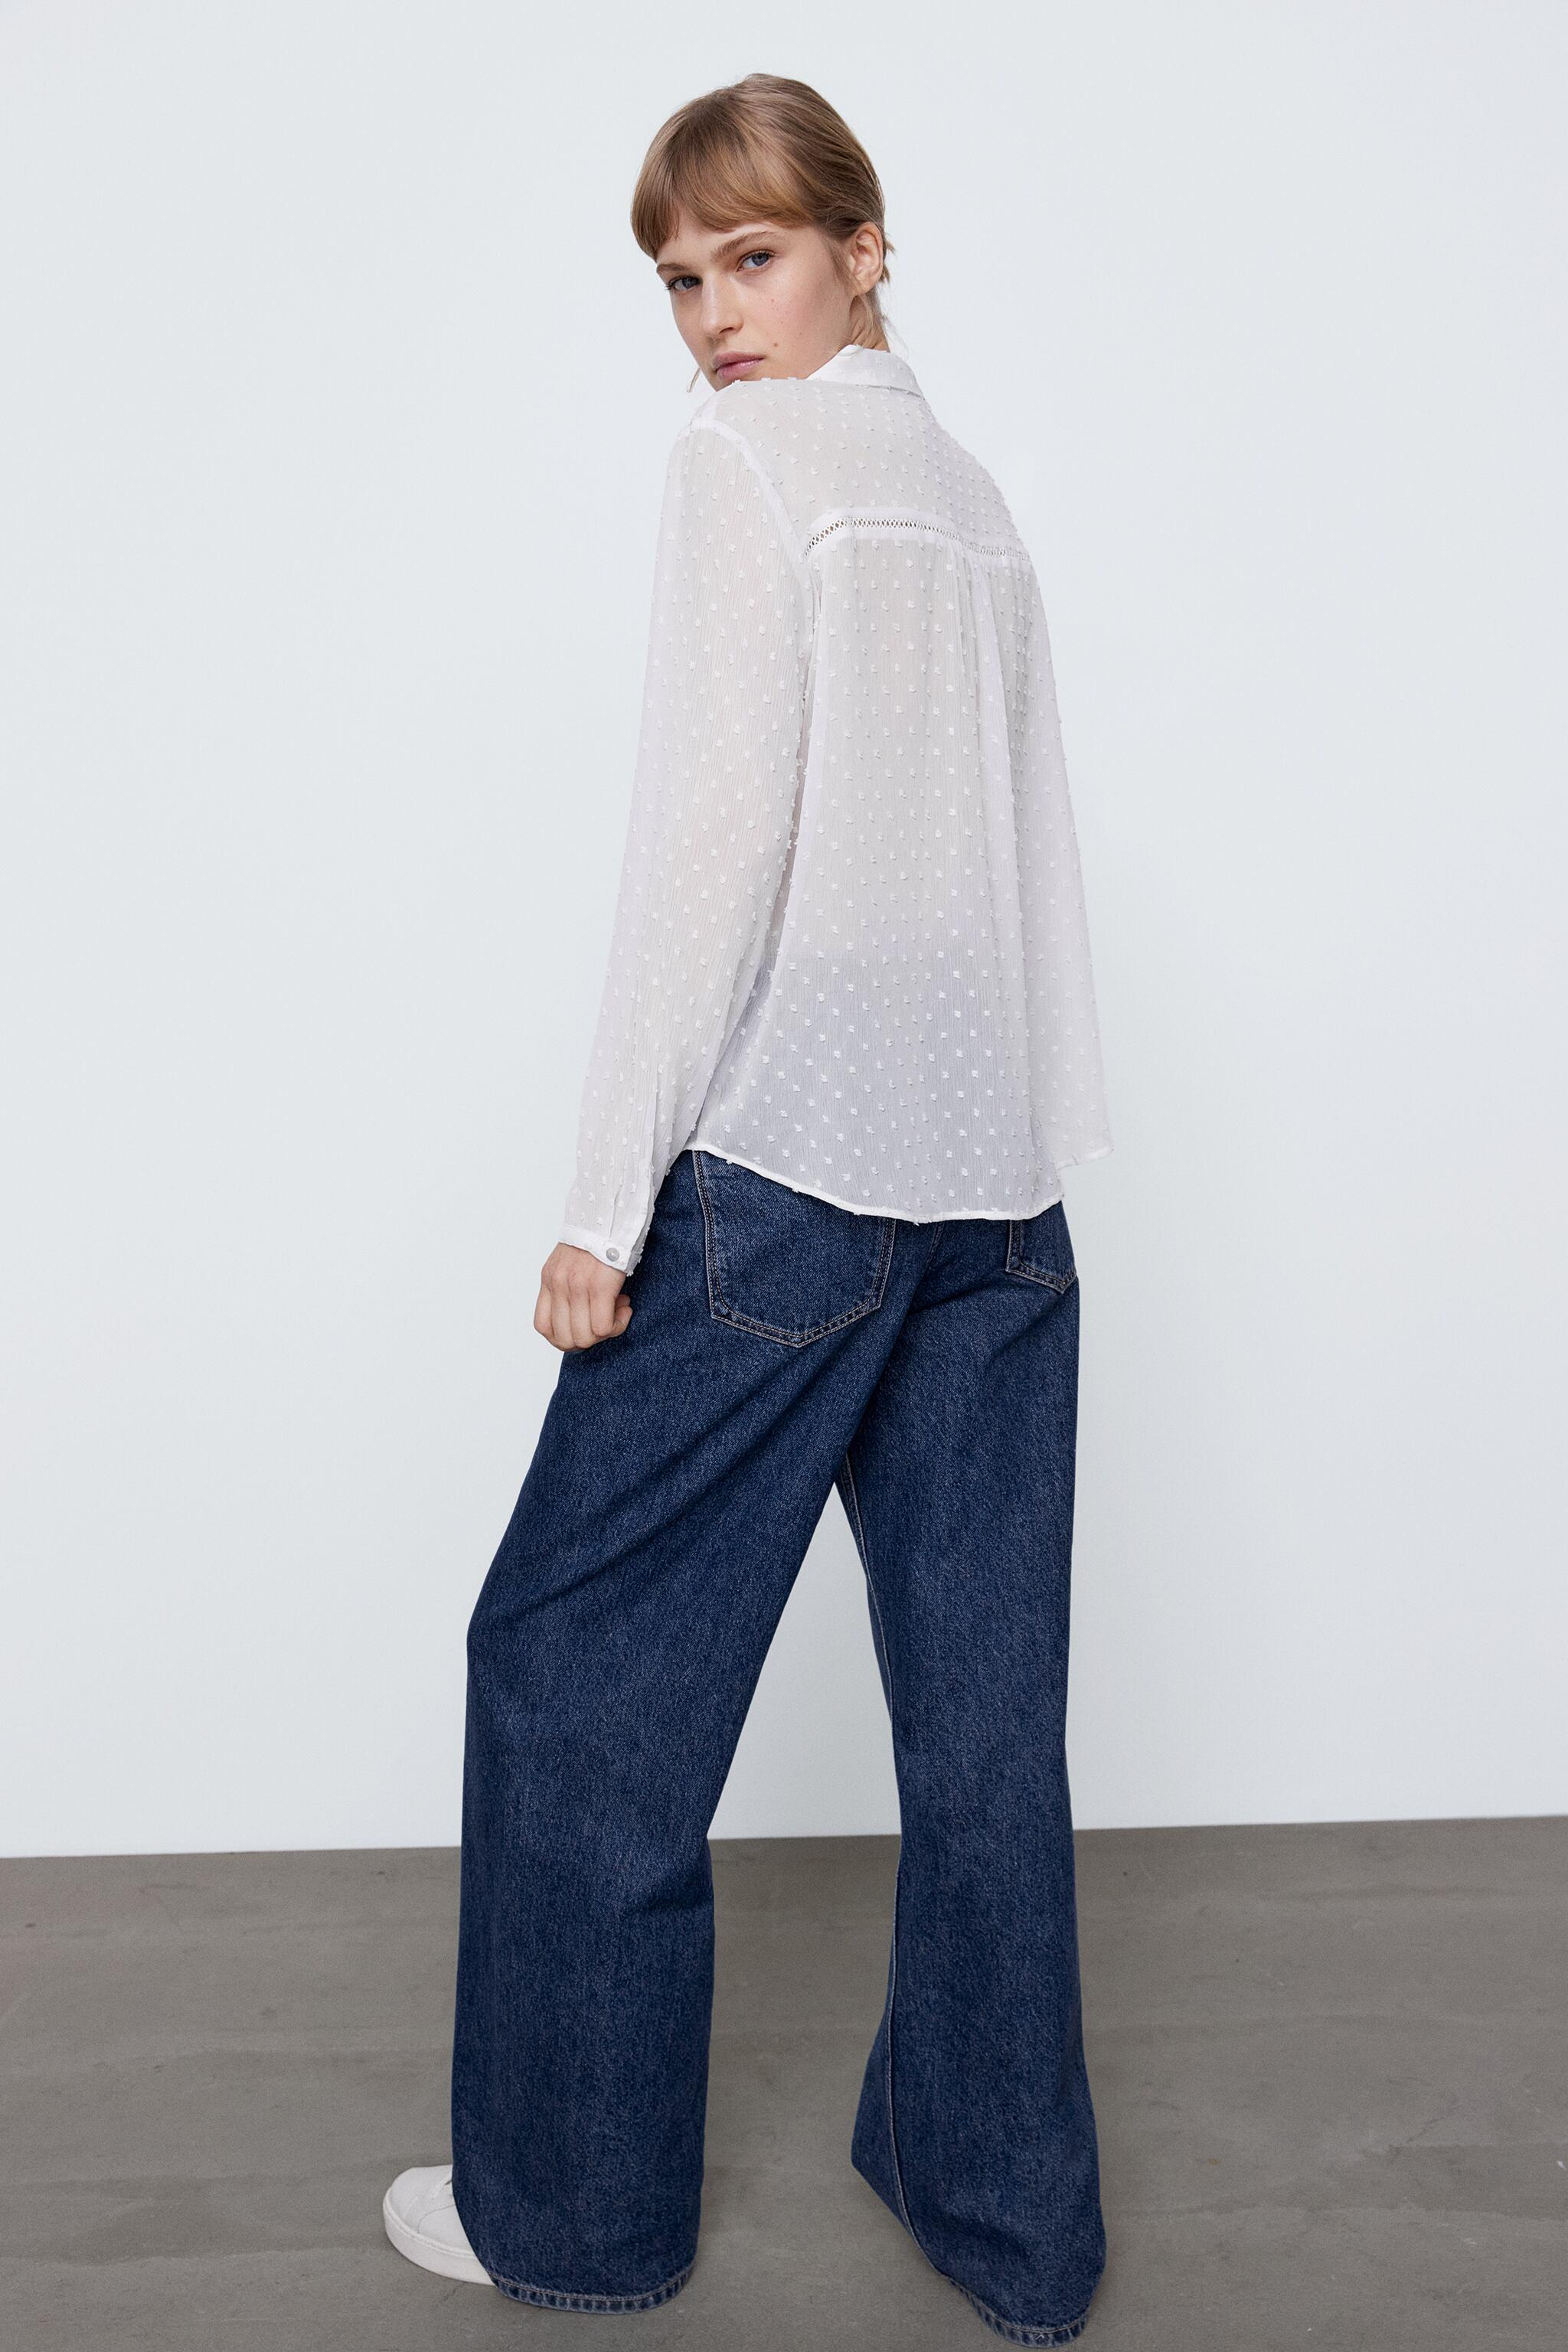 DOTTED MESH LACE INSERT SHIRT 3